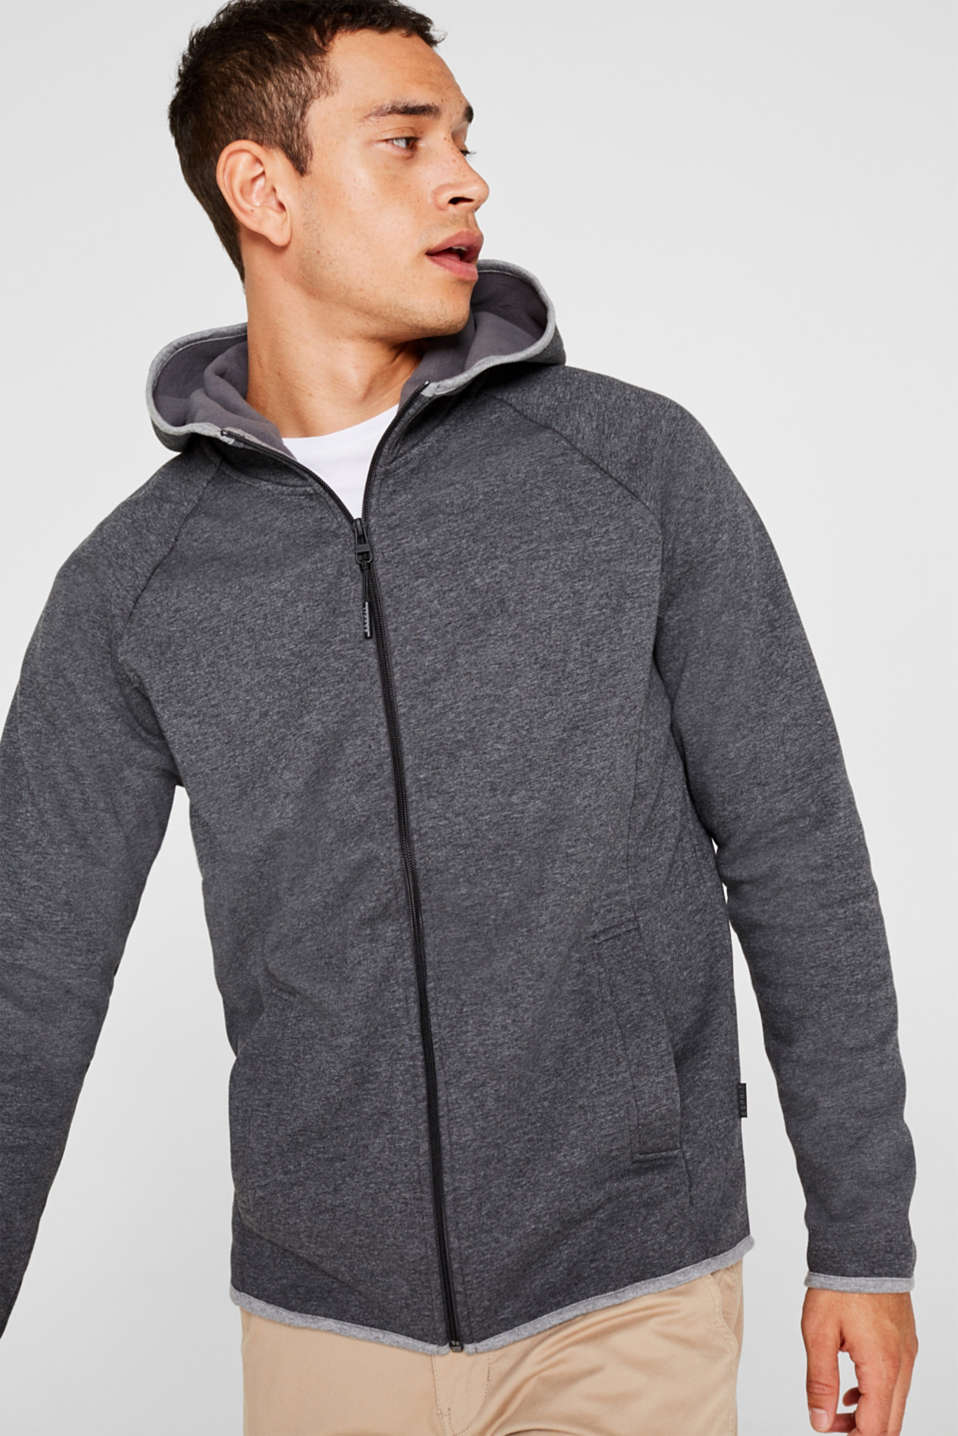 Esprit - Sweat-Cardigan mit Fleece-Futter